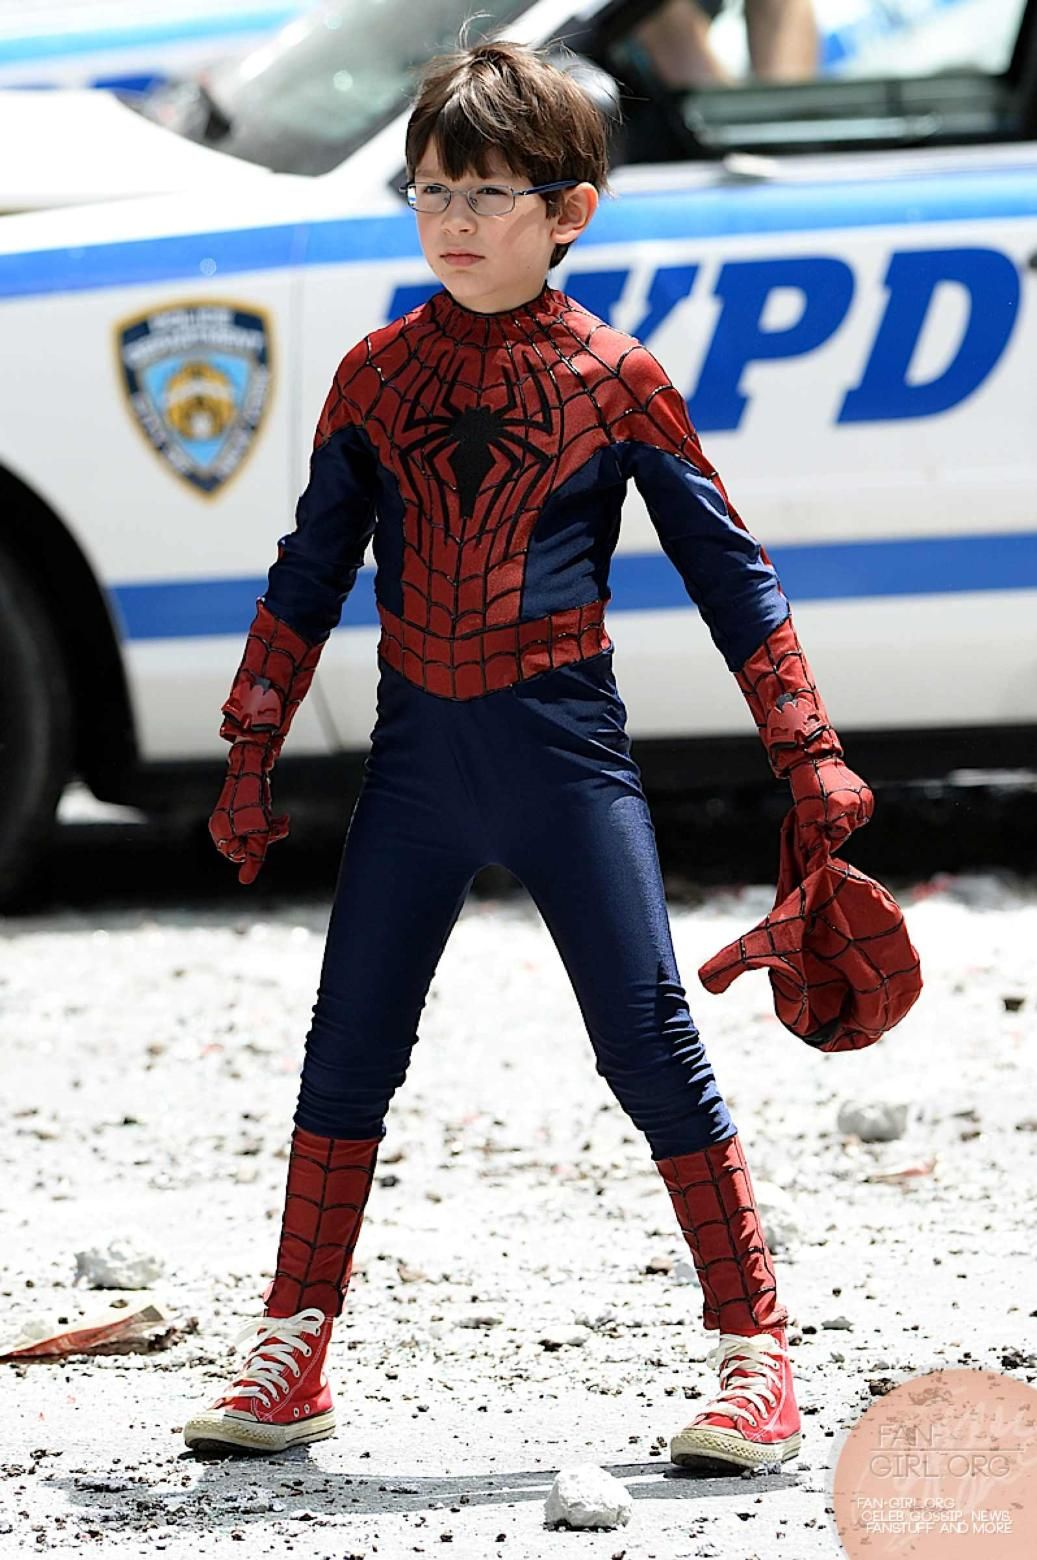 Three New Photos from Breaking Dawn Part 2 Spiderman